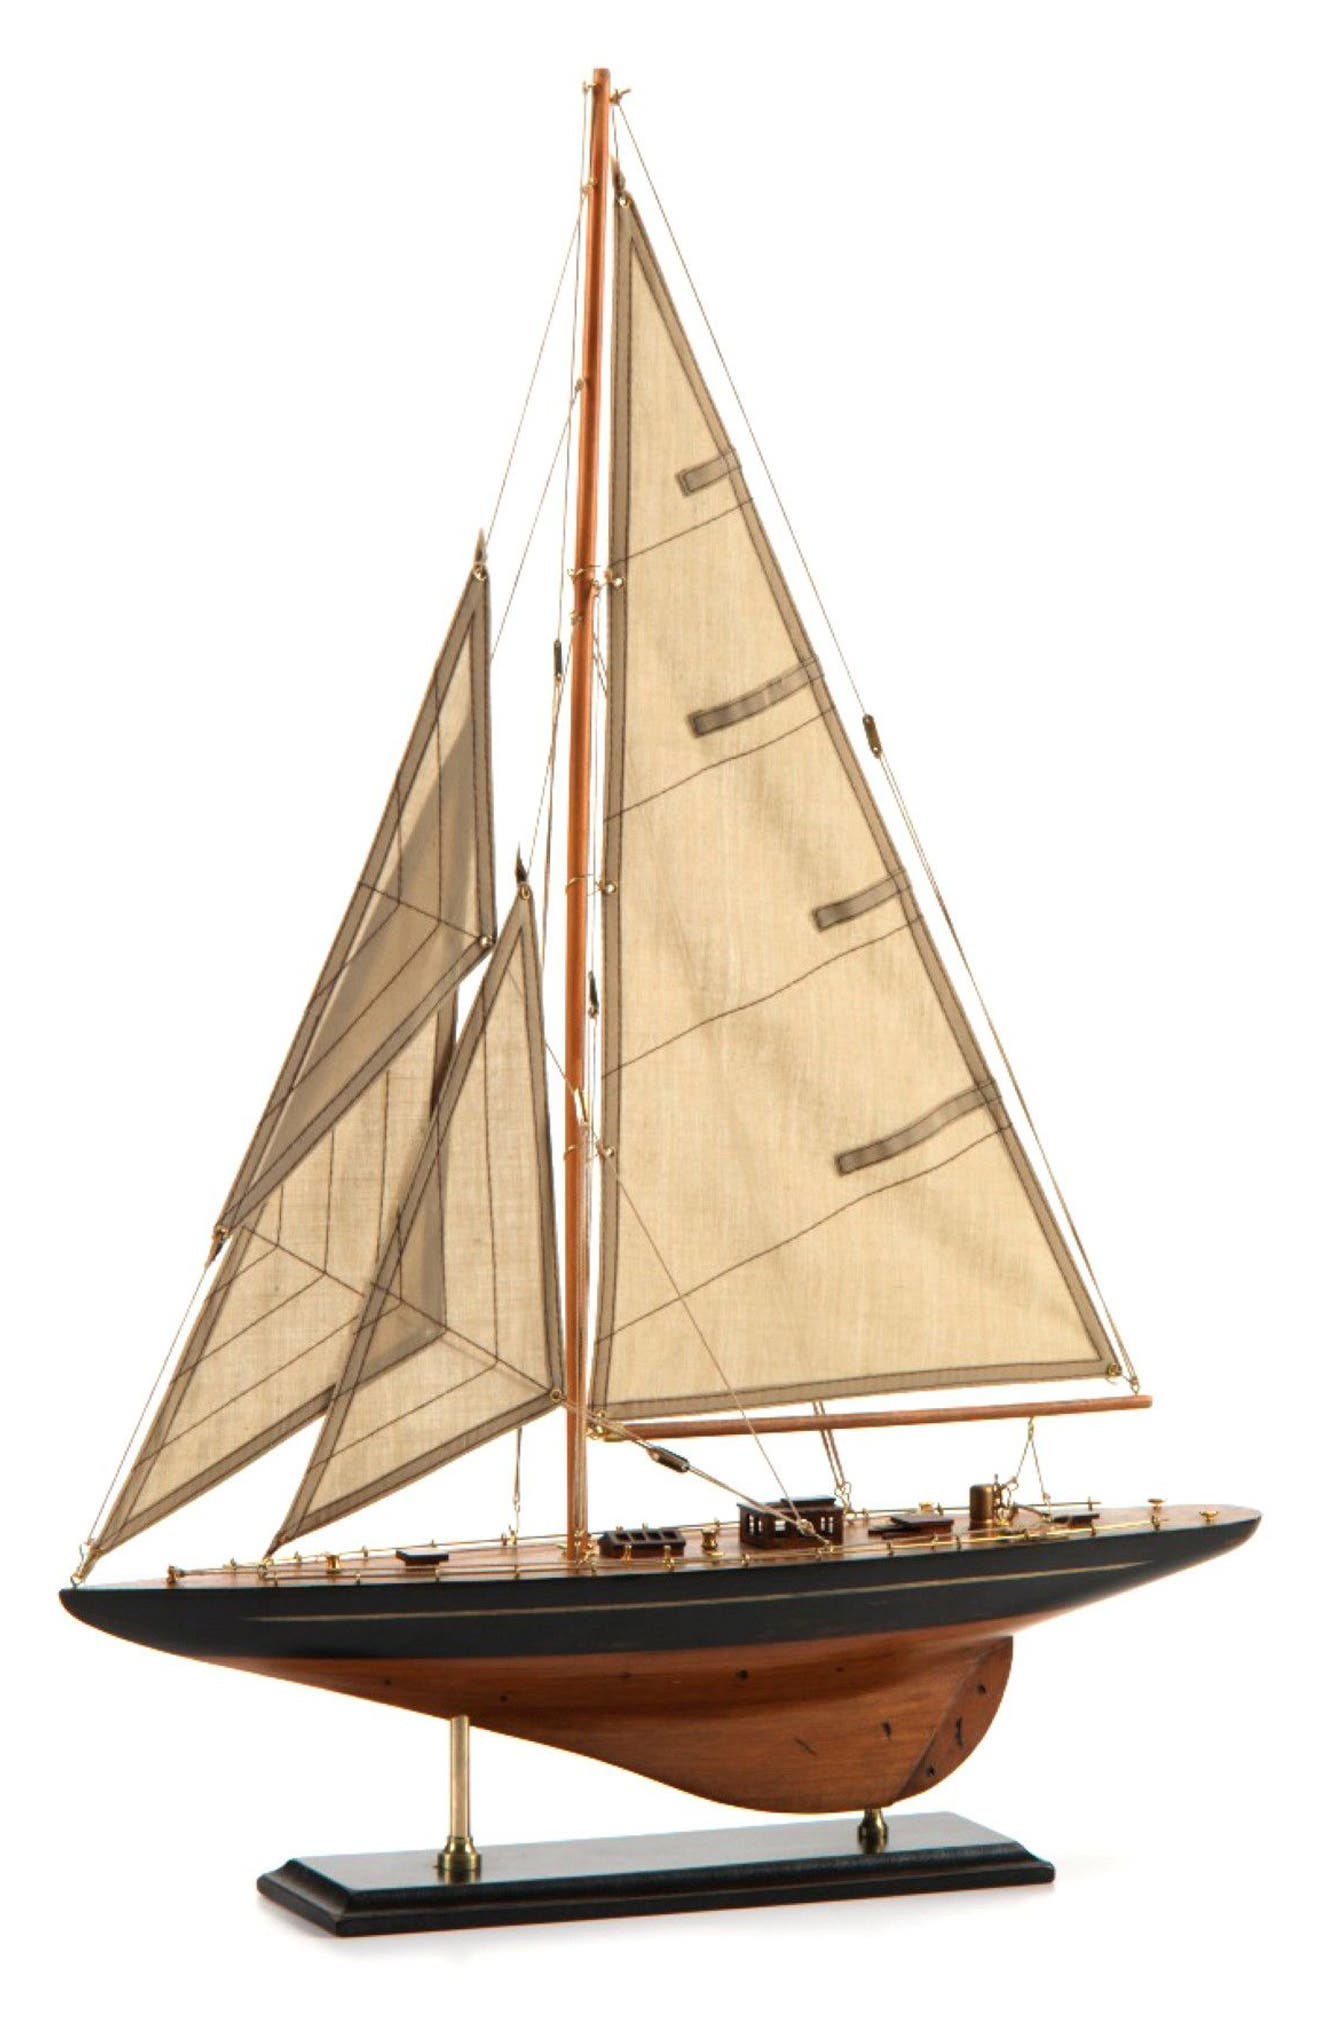 Murano Wooden Sailboat Model,                             Main thumbnail 1, color,                             250